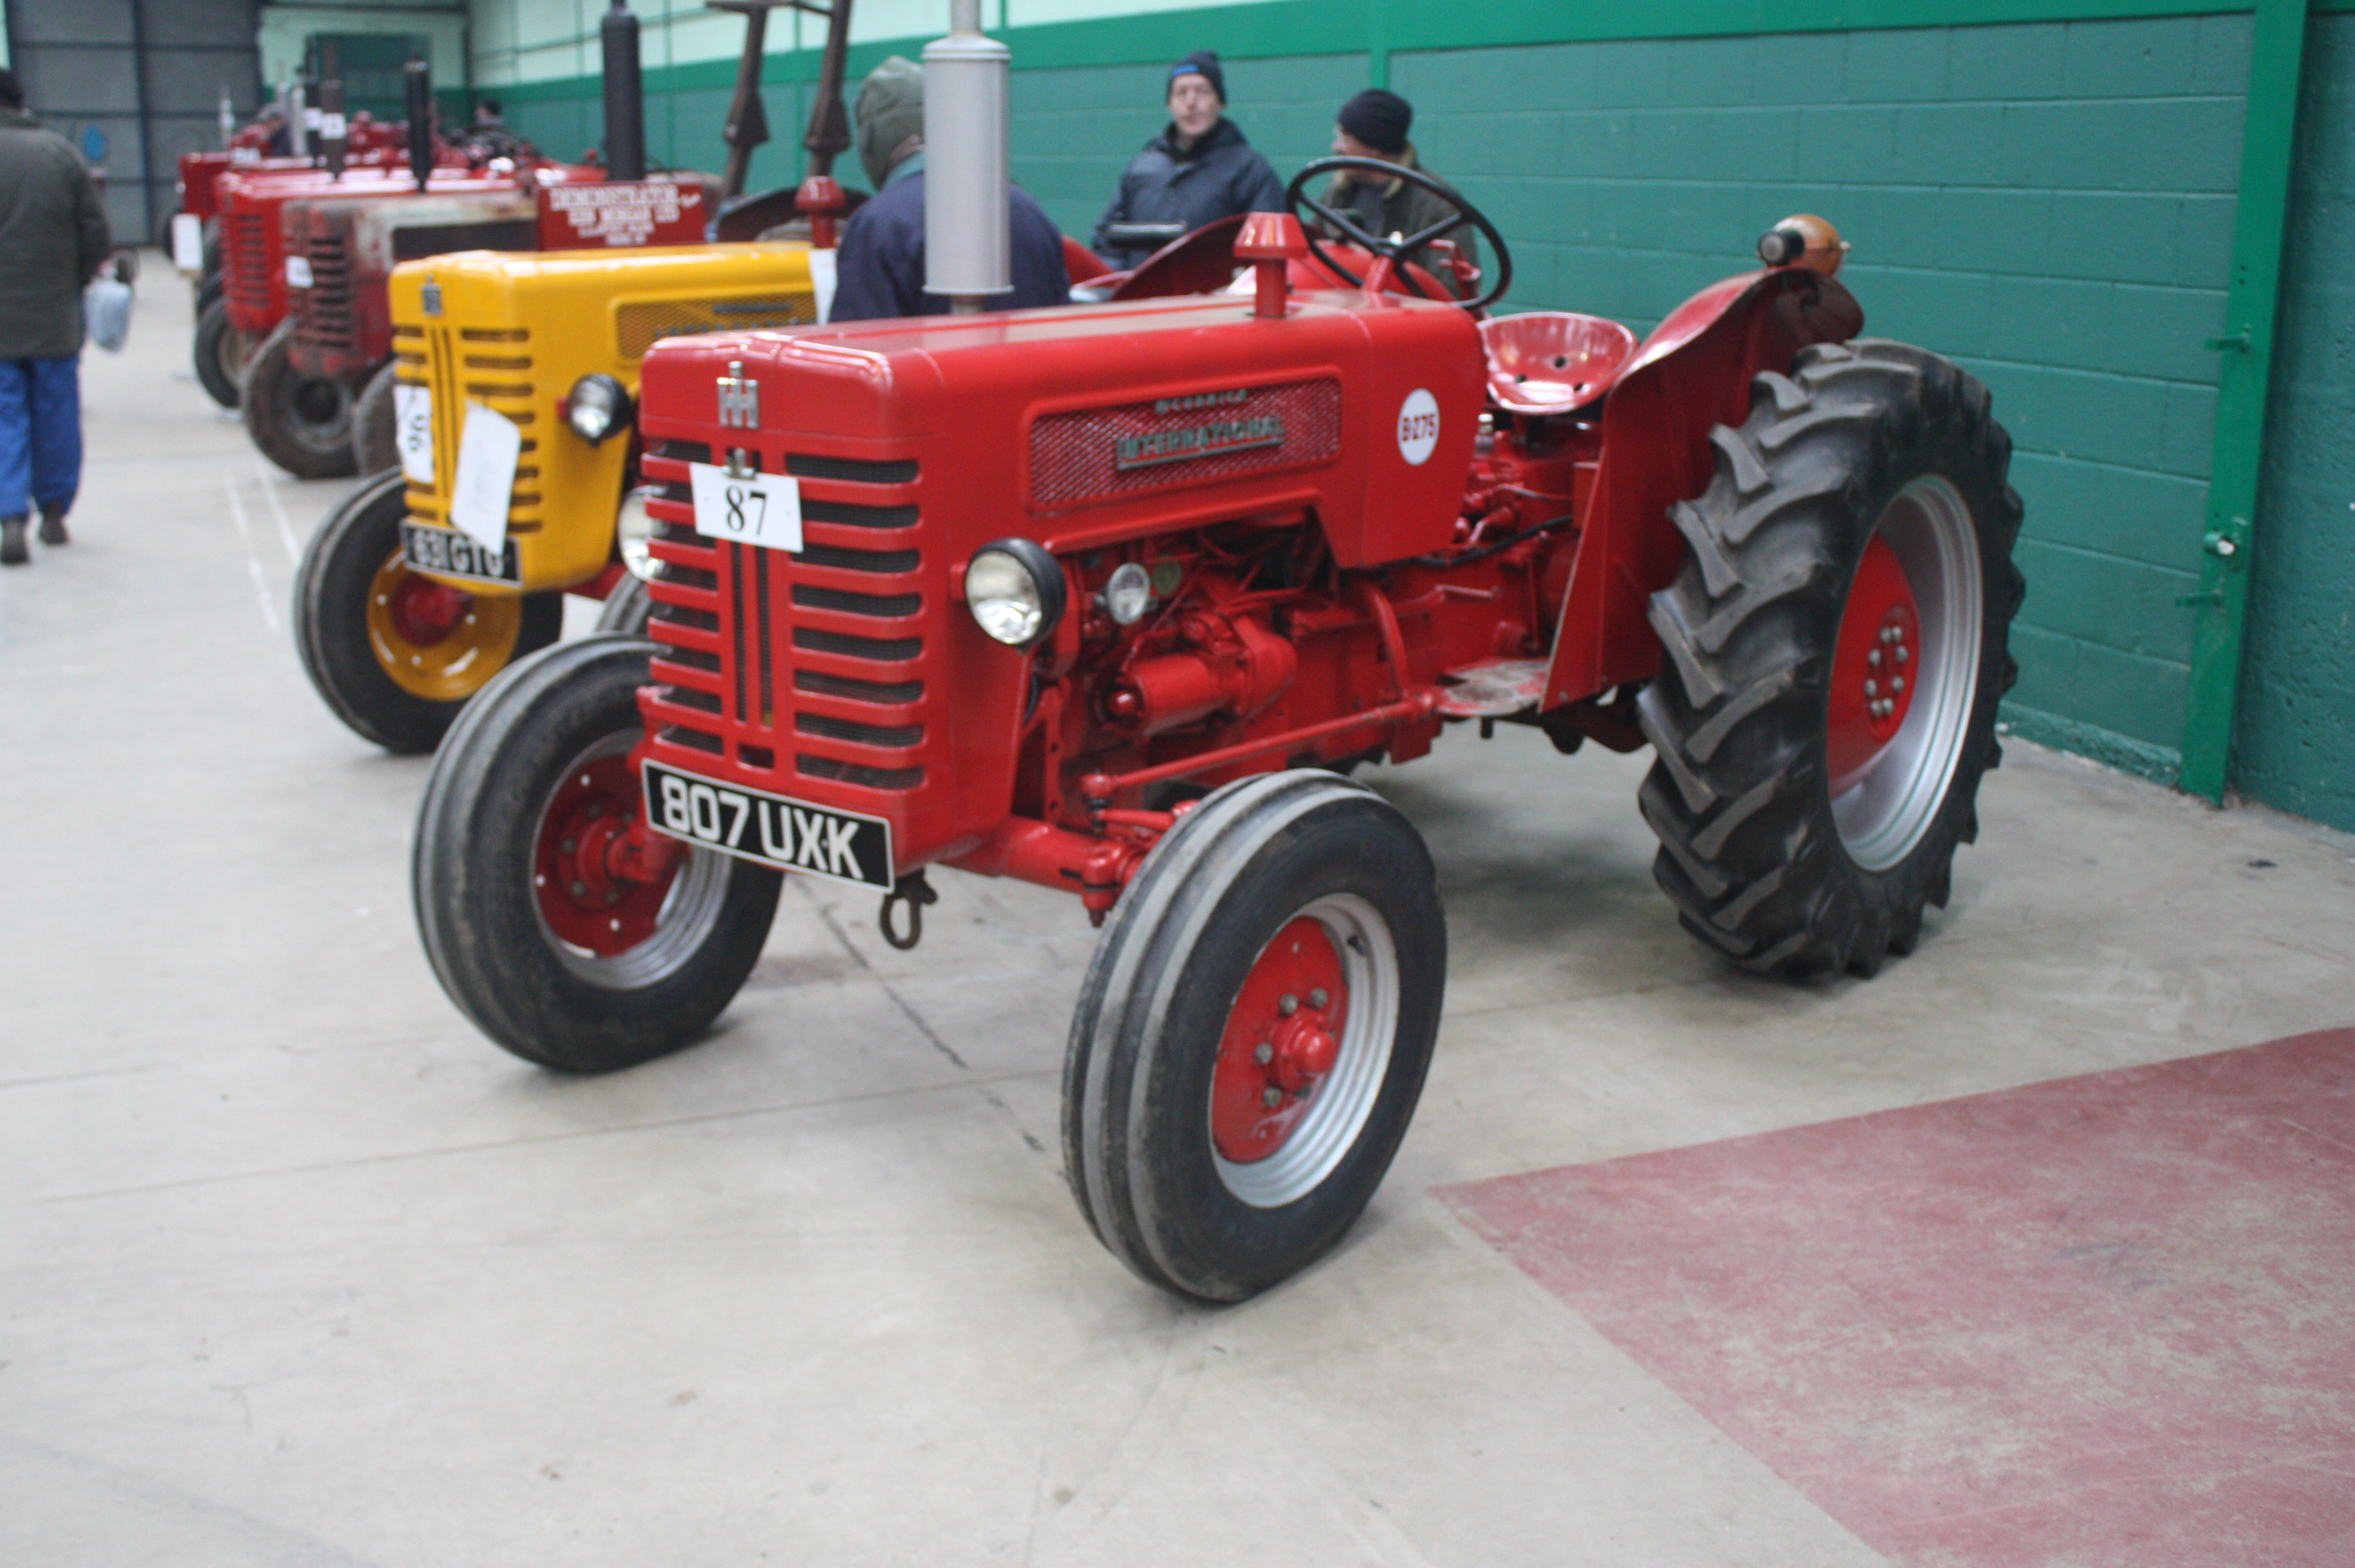 international b Find great deals on ebay for international b250 in antique tractor parts and accessories shop with confidence.